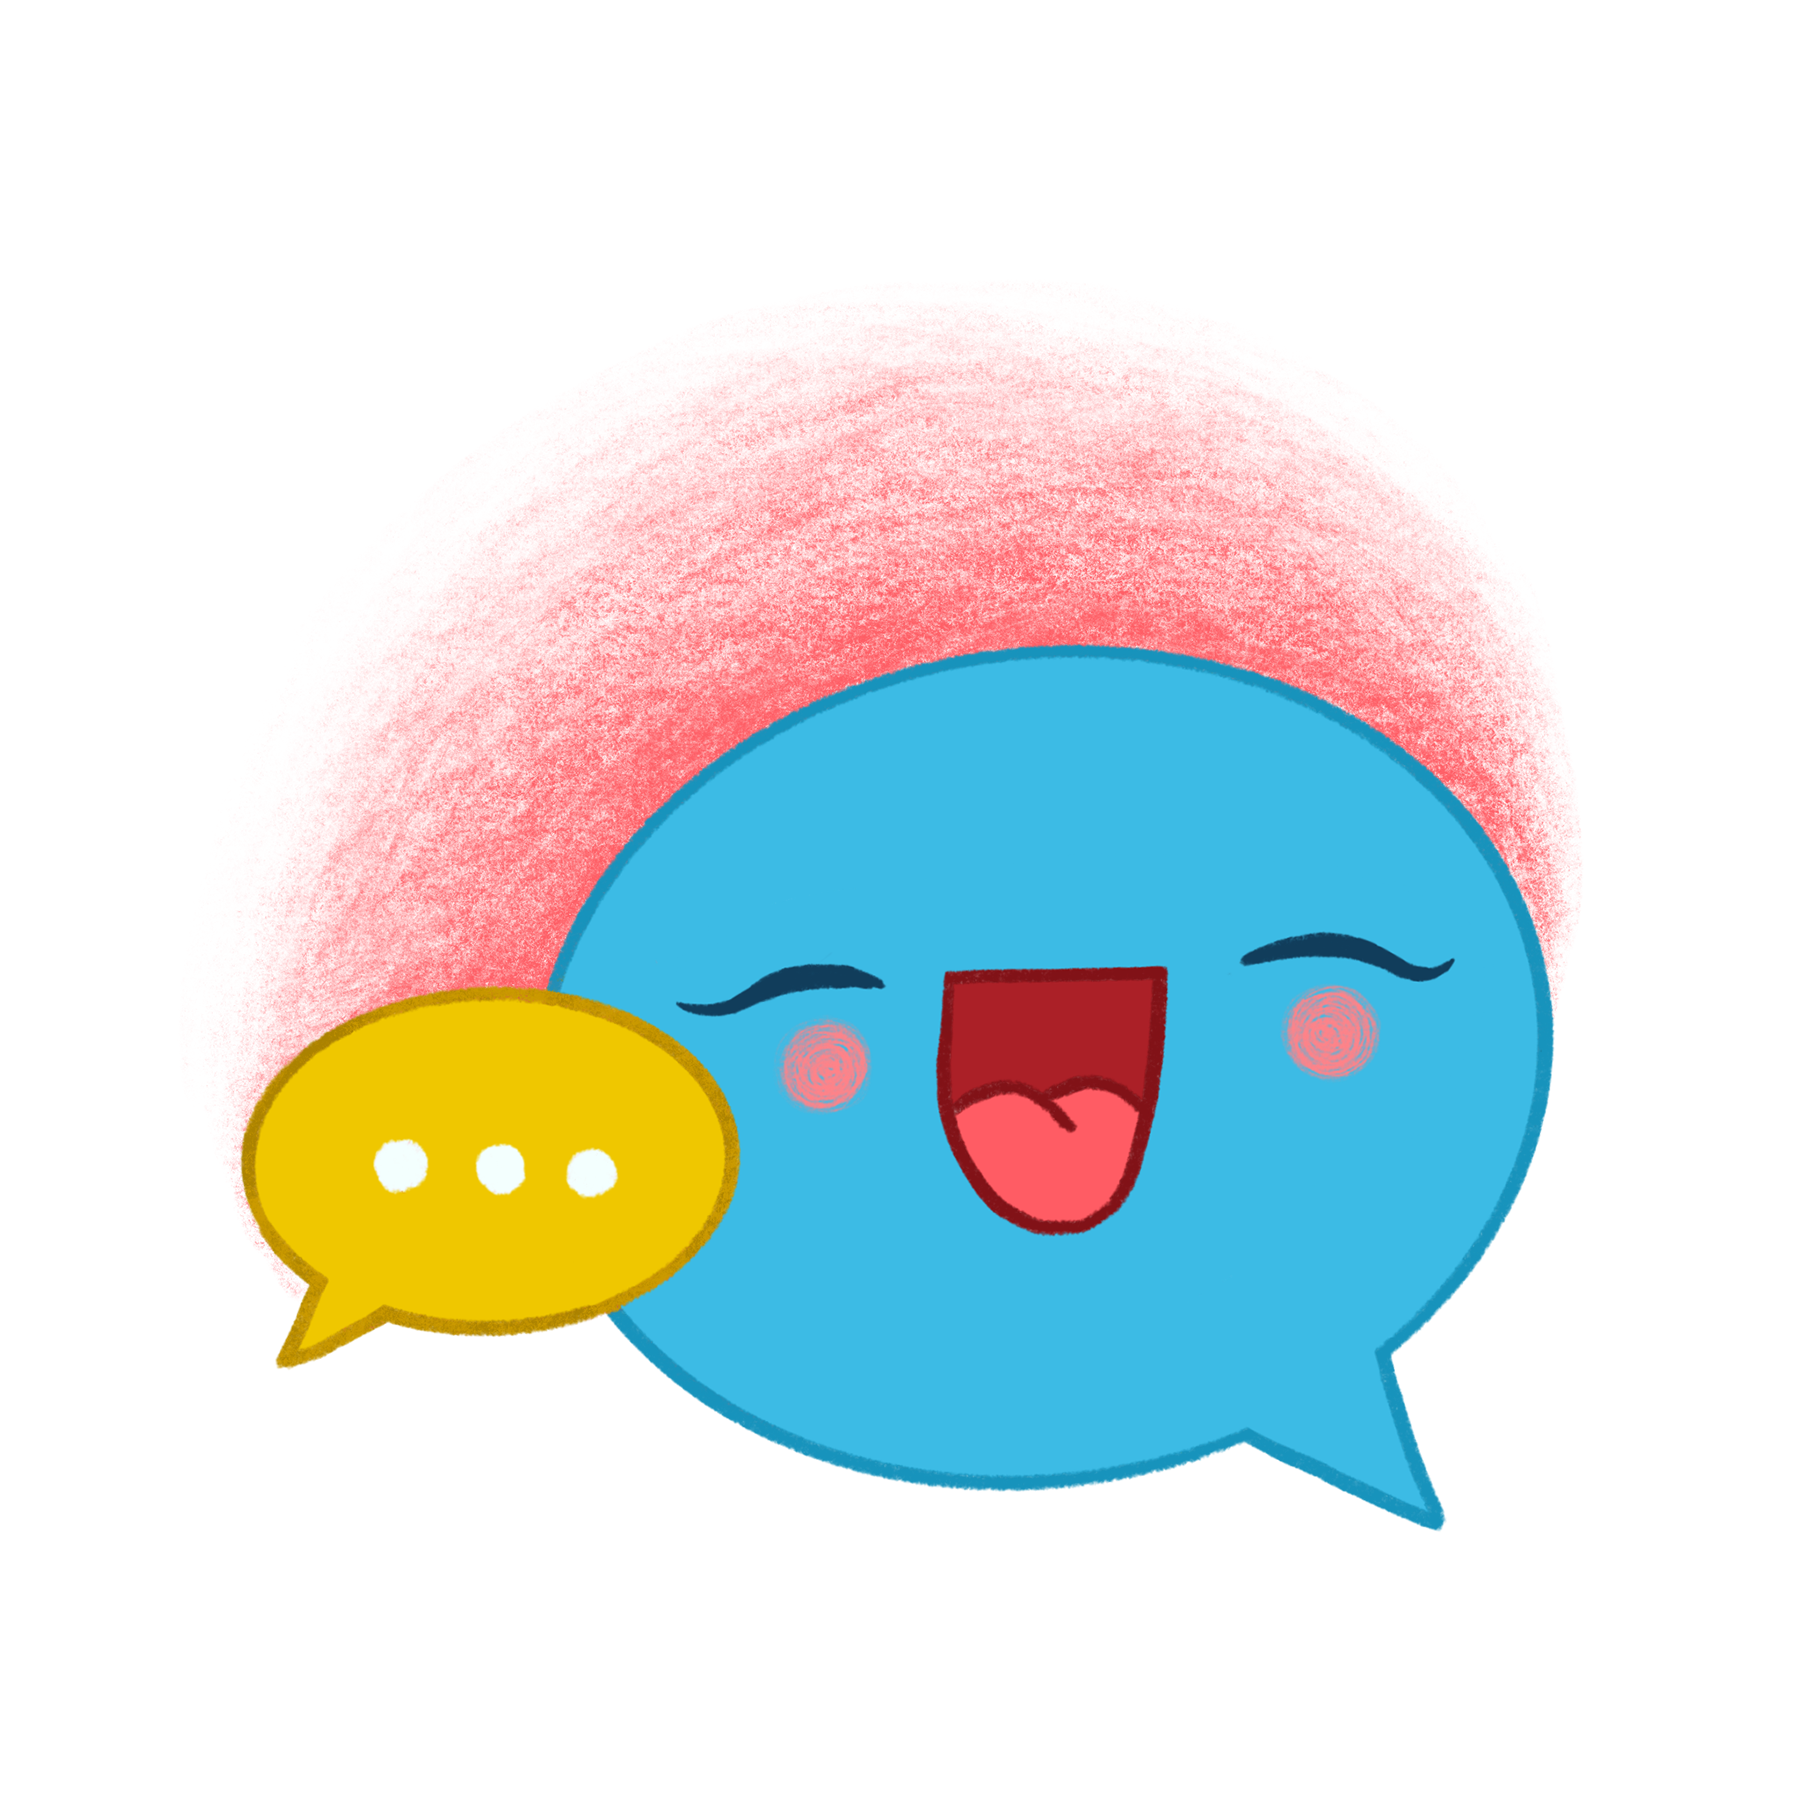 a colorful, happy speech bubble ready to chat